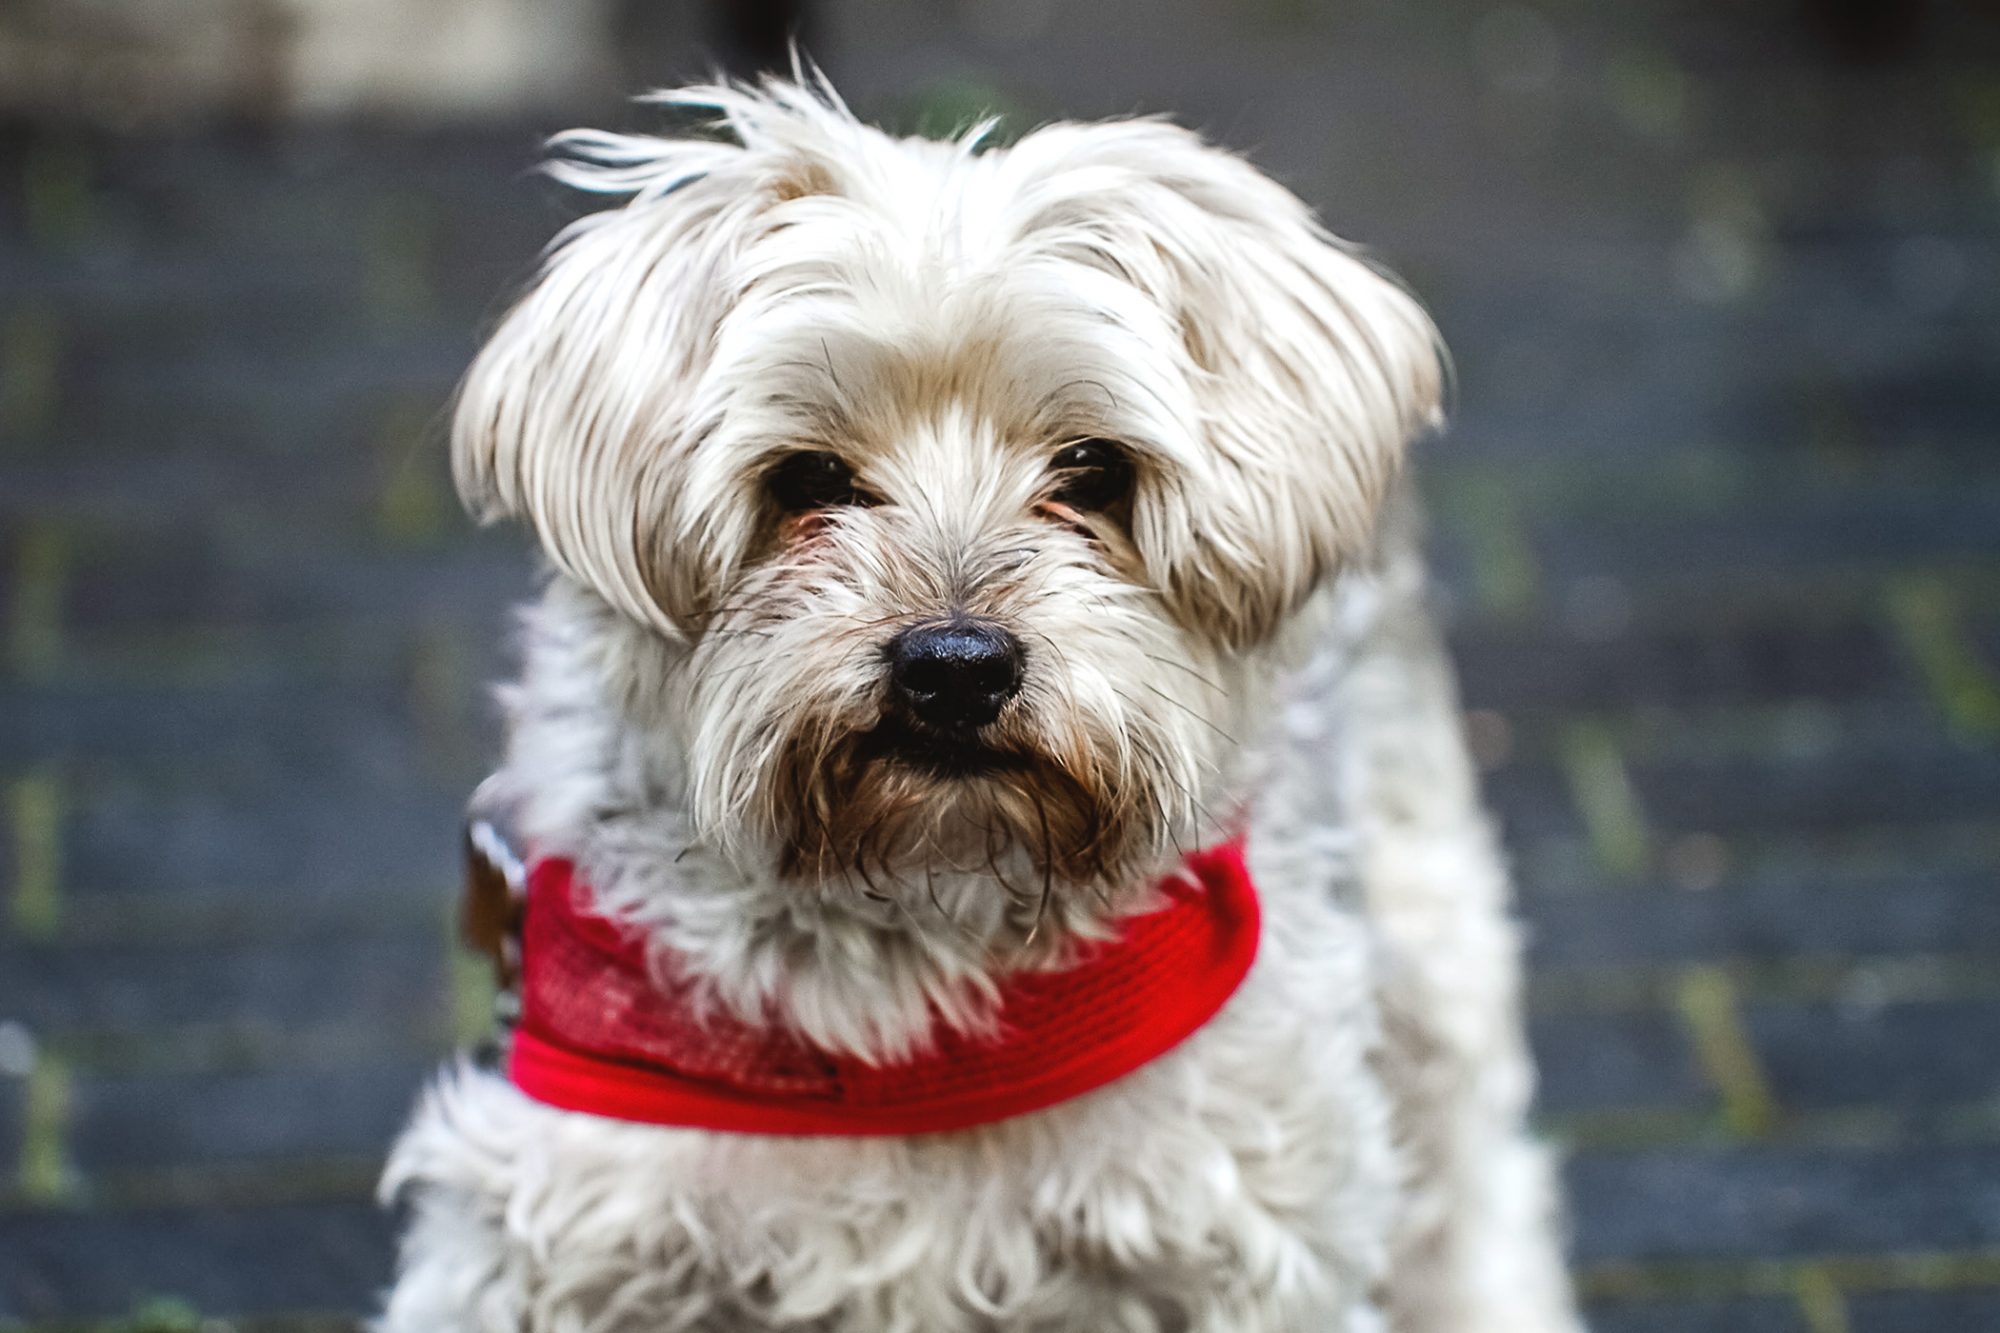 White yorkiepoo with red collar